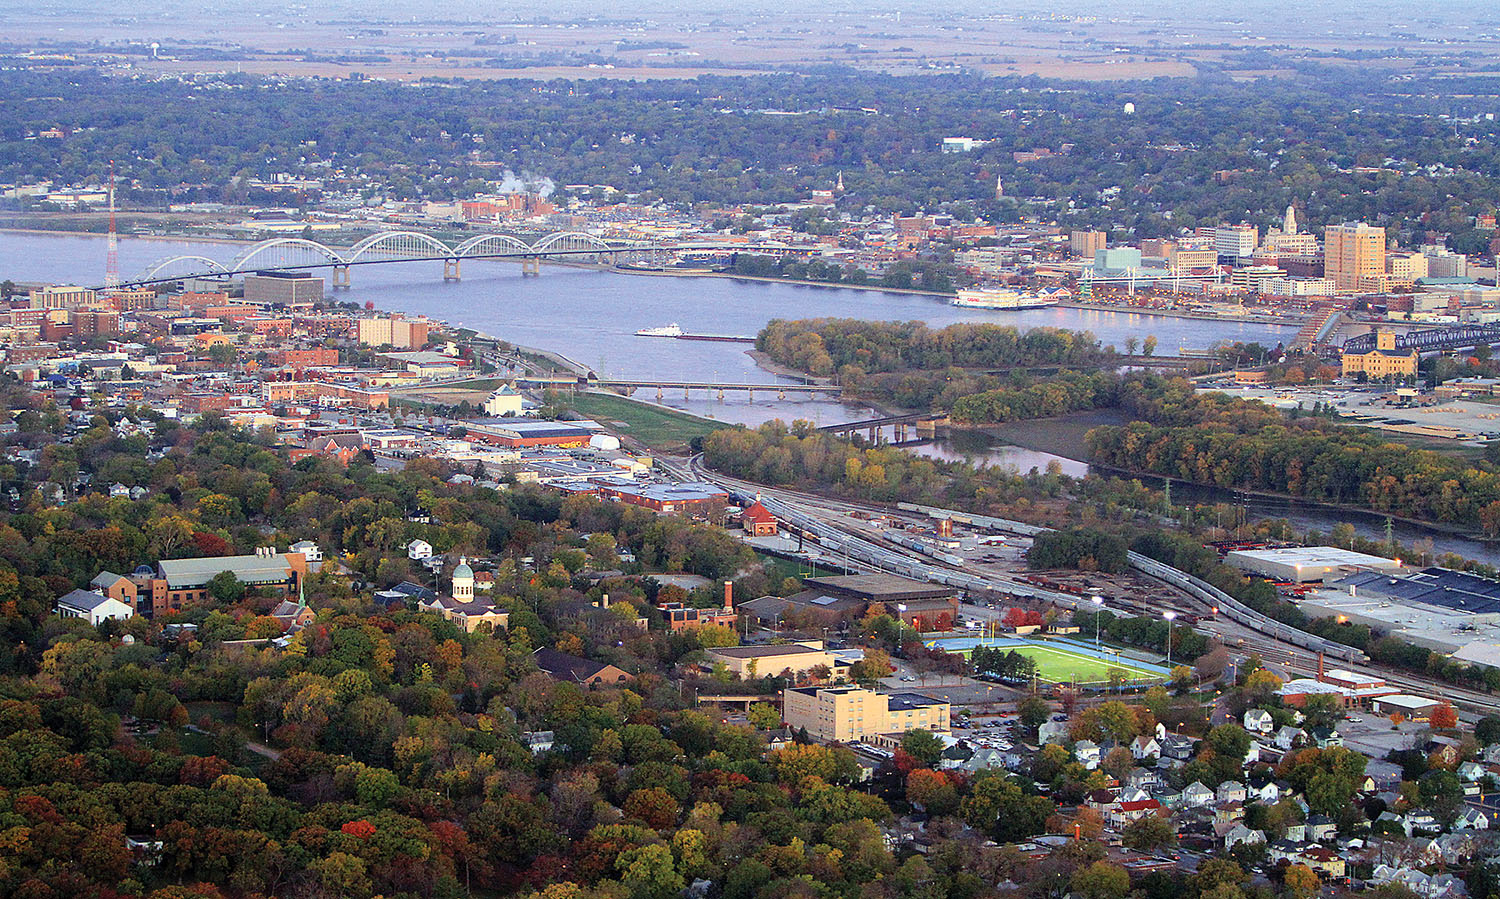 The Centennial Bridge, on the left, and Arsenal Island on the right, are key features of the Mississippi River in the Quad Cities area. Davenport, Iowa, is across the river, and Rock Island, Ill., is in the foreground. (Photo courtesy of Dawson & Associates)